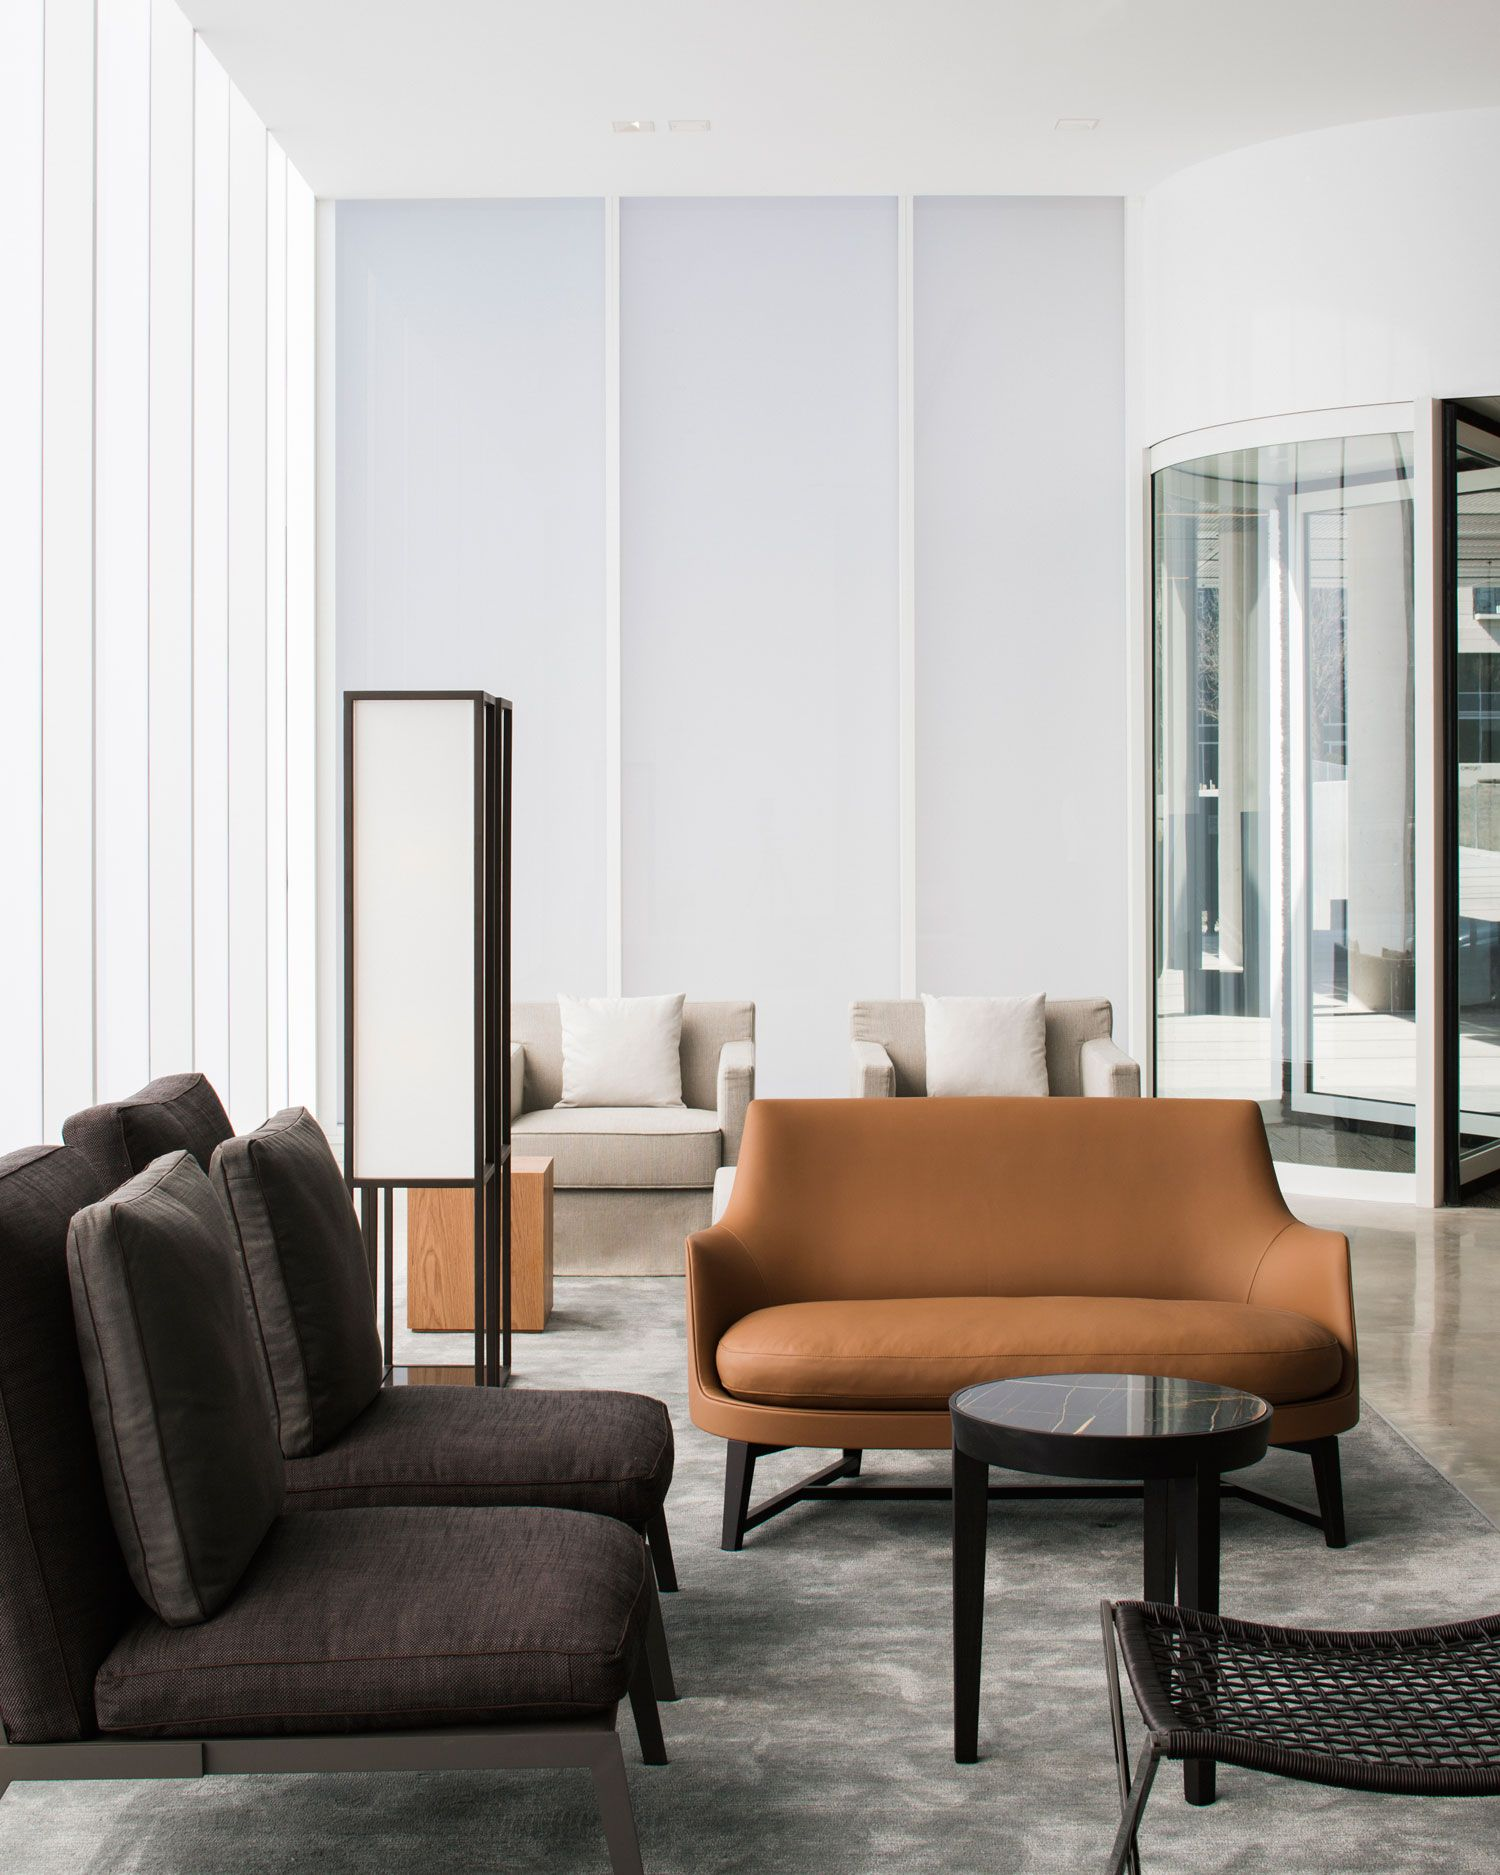 Little National Hotel Canberraredgen Mathieson Architects New Little Living Room Design Decorating Inspiration